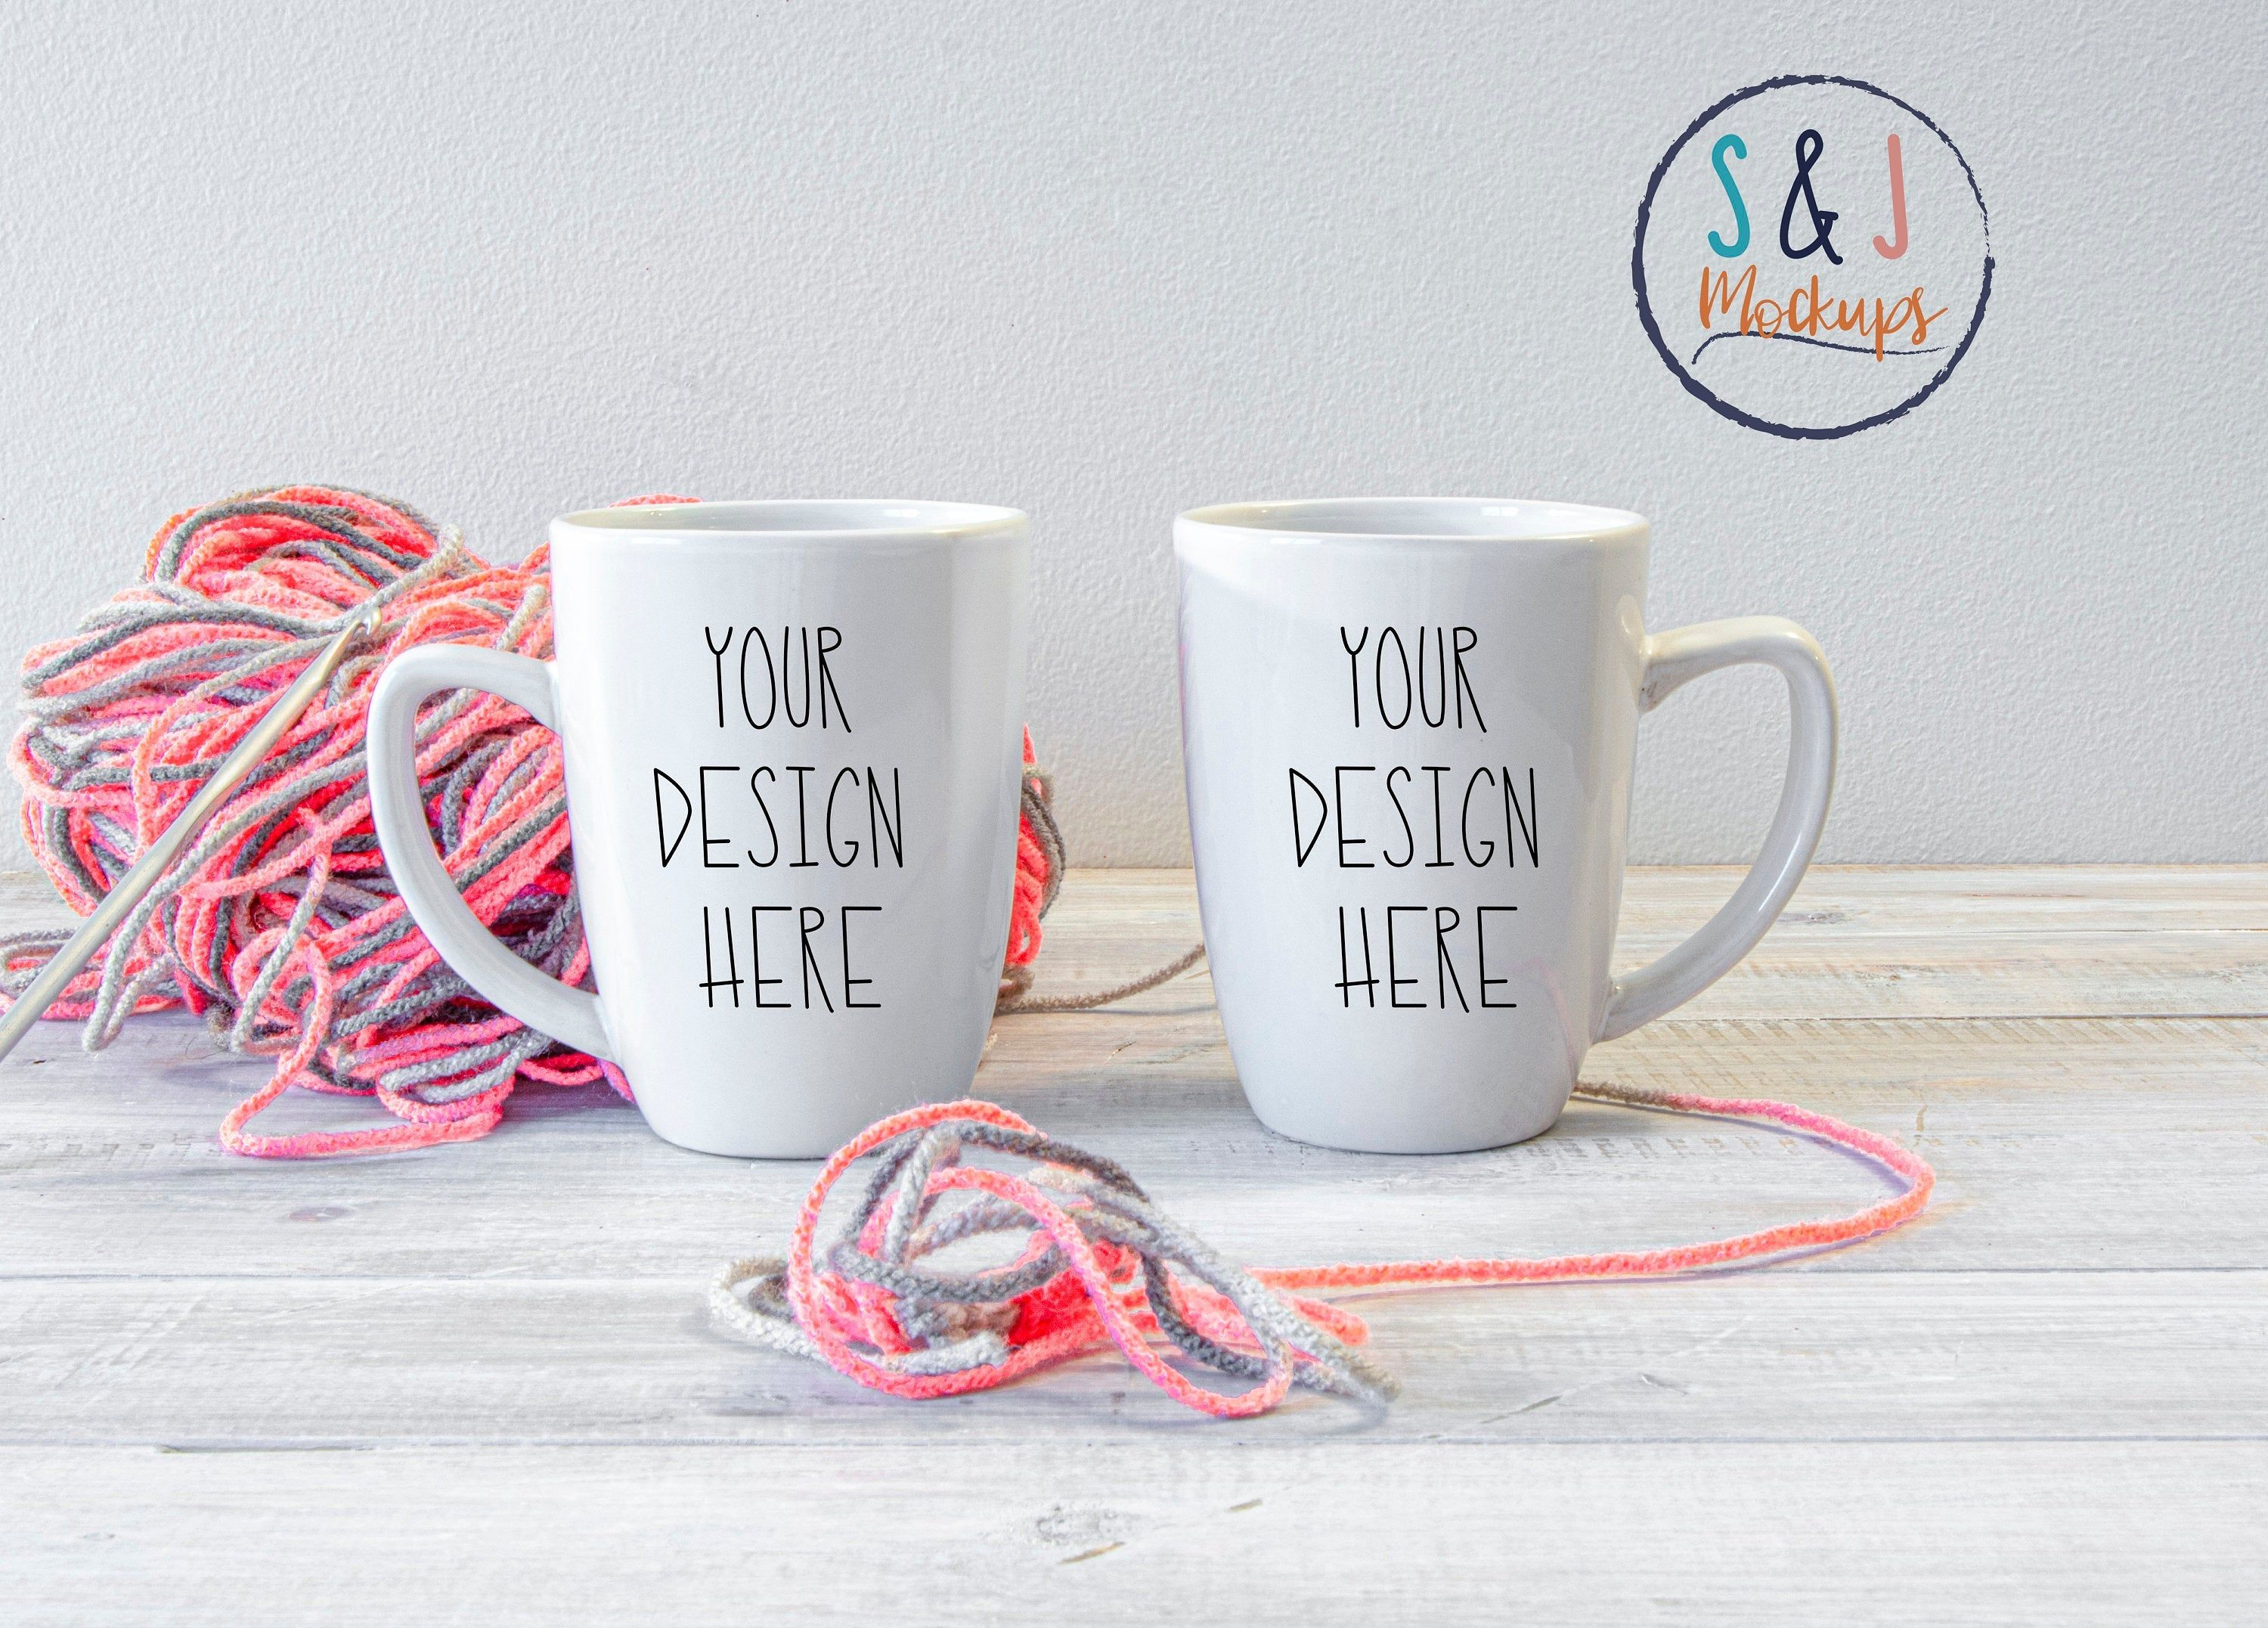 Product Mockup, Coffee Cup Mockup, Template Design, Blank